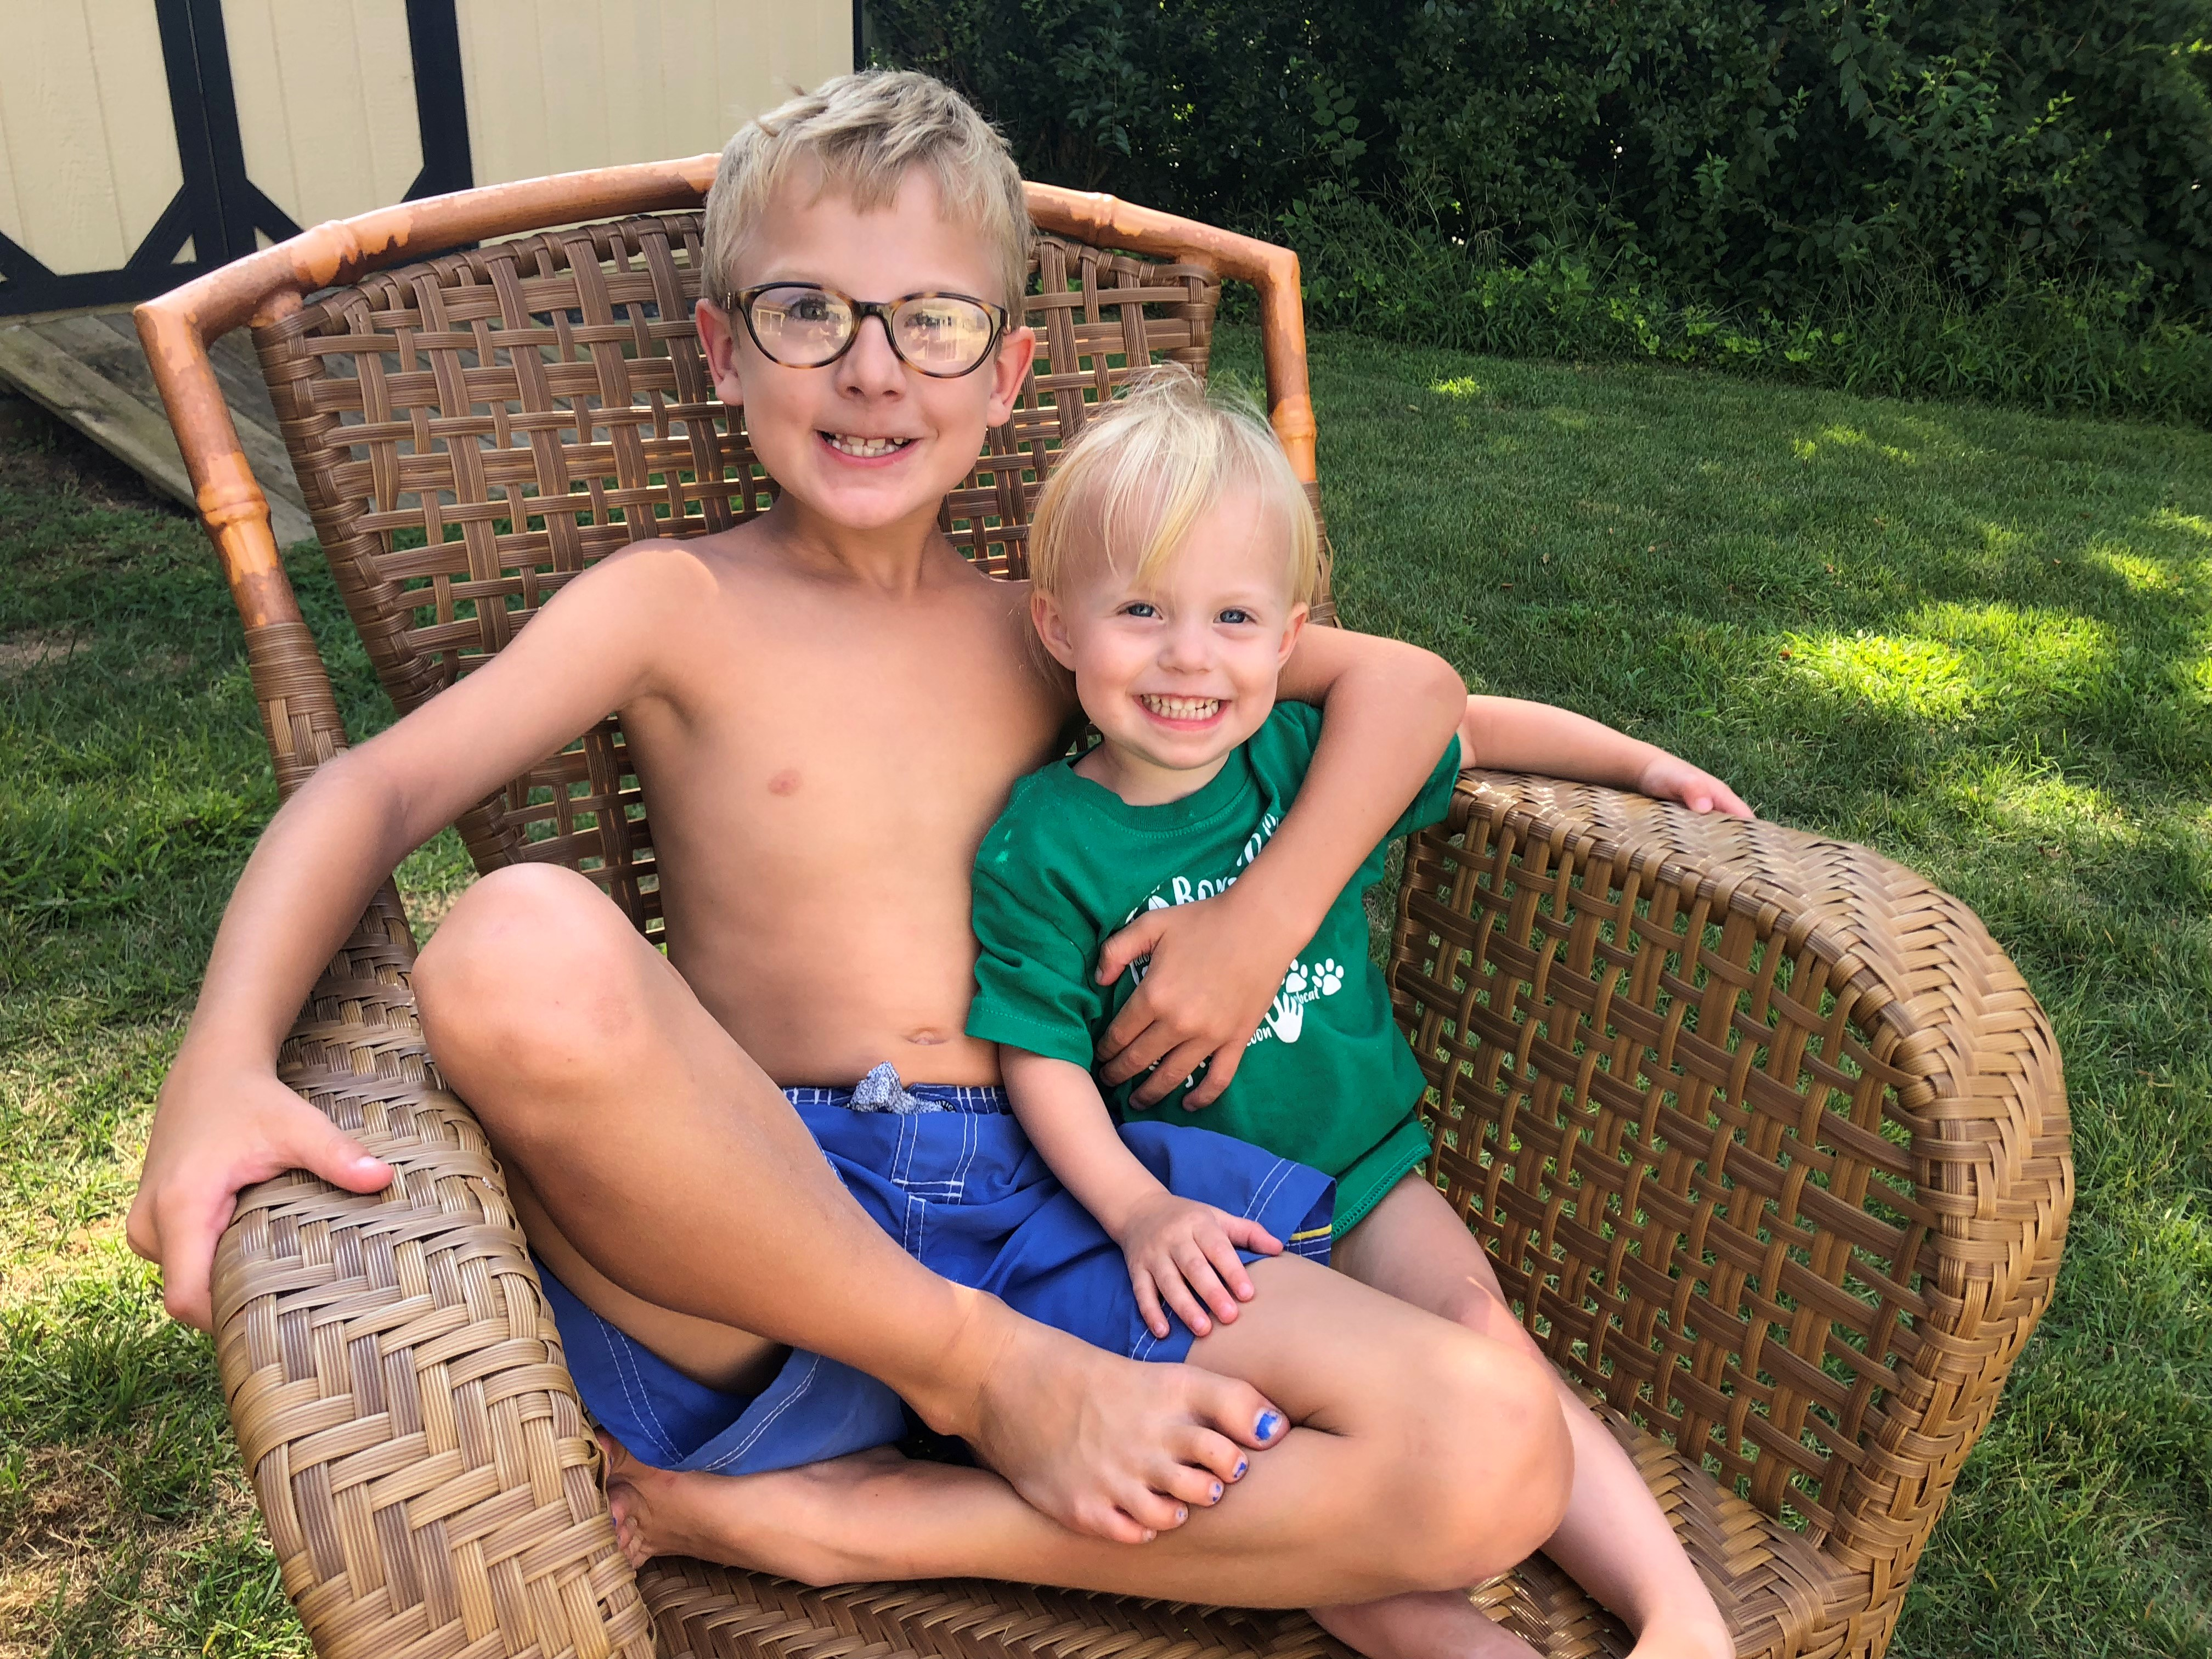 Big brother and little sister side-by-side in wicker chair